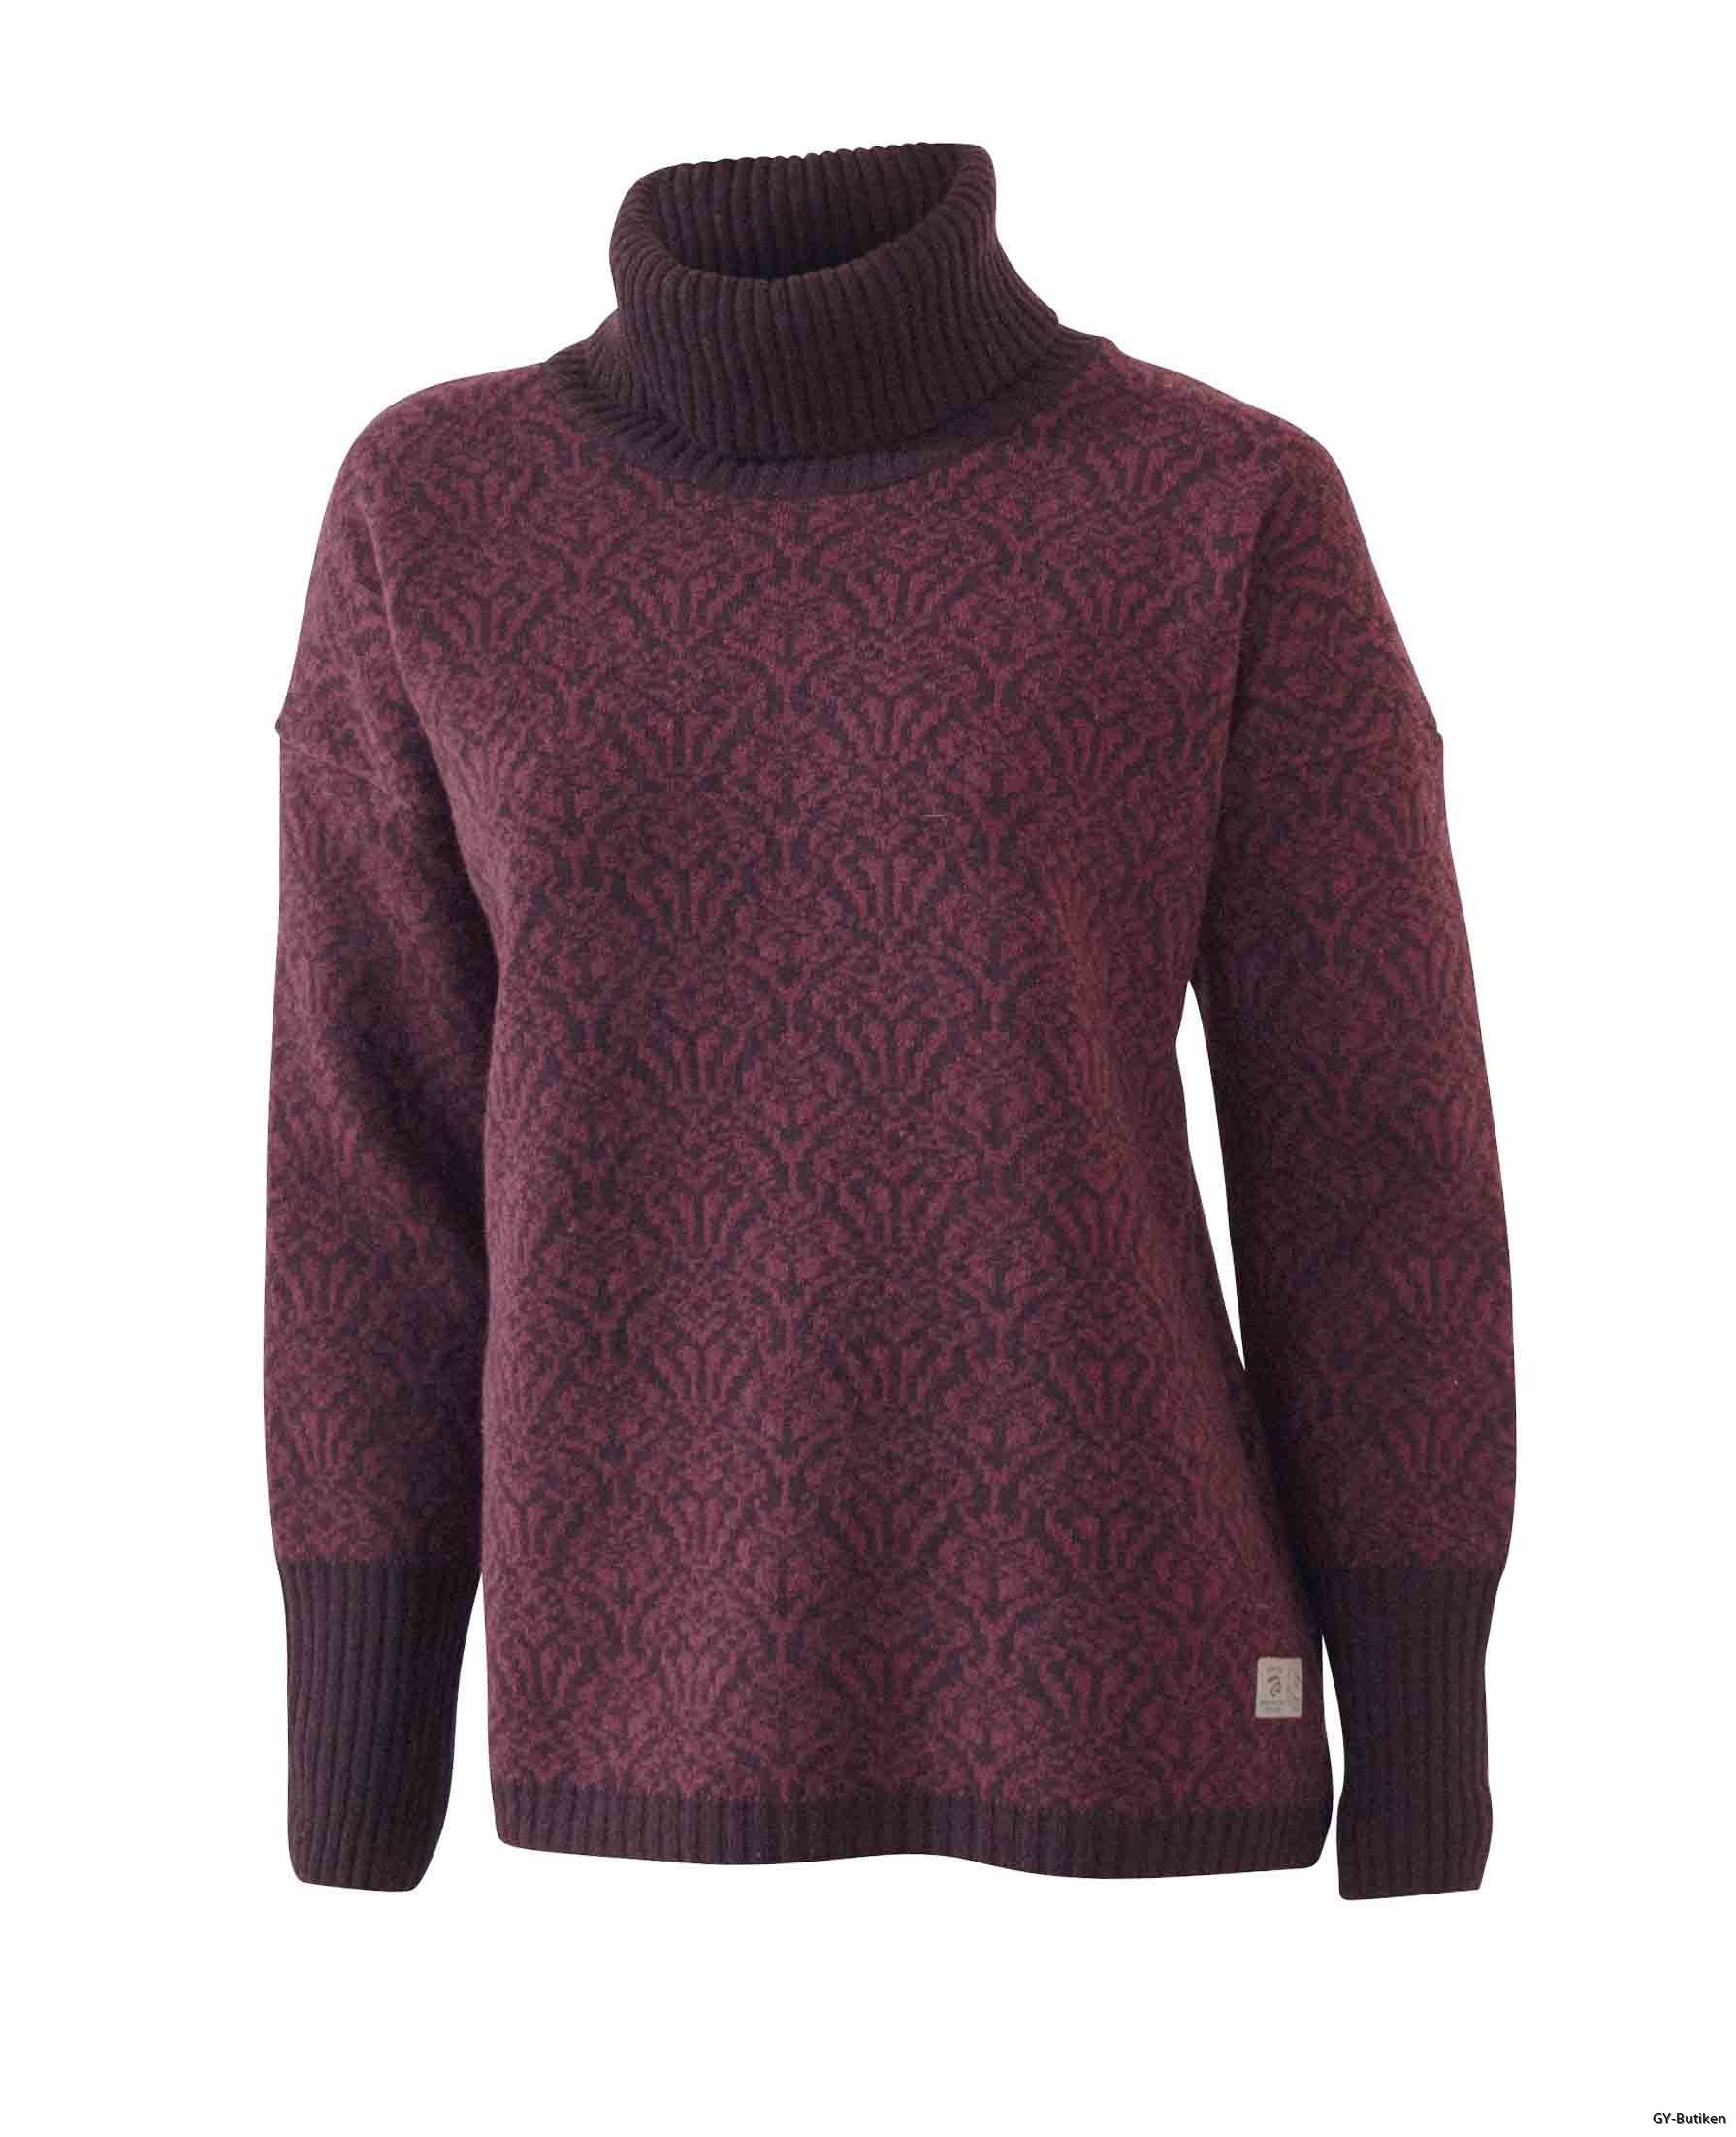 GY_Korrebo_Sweater_047